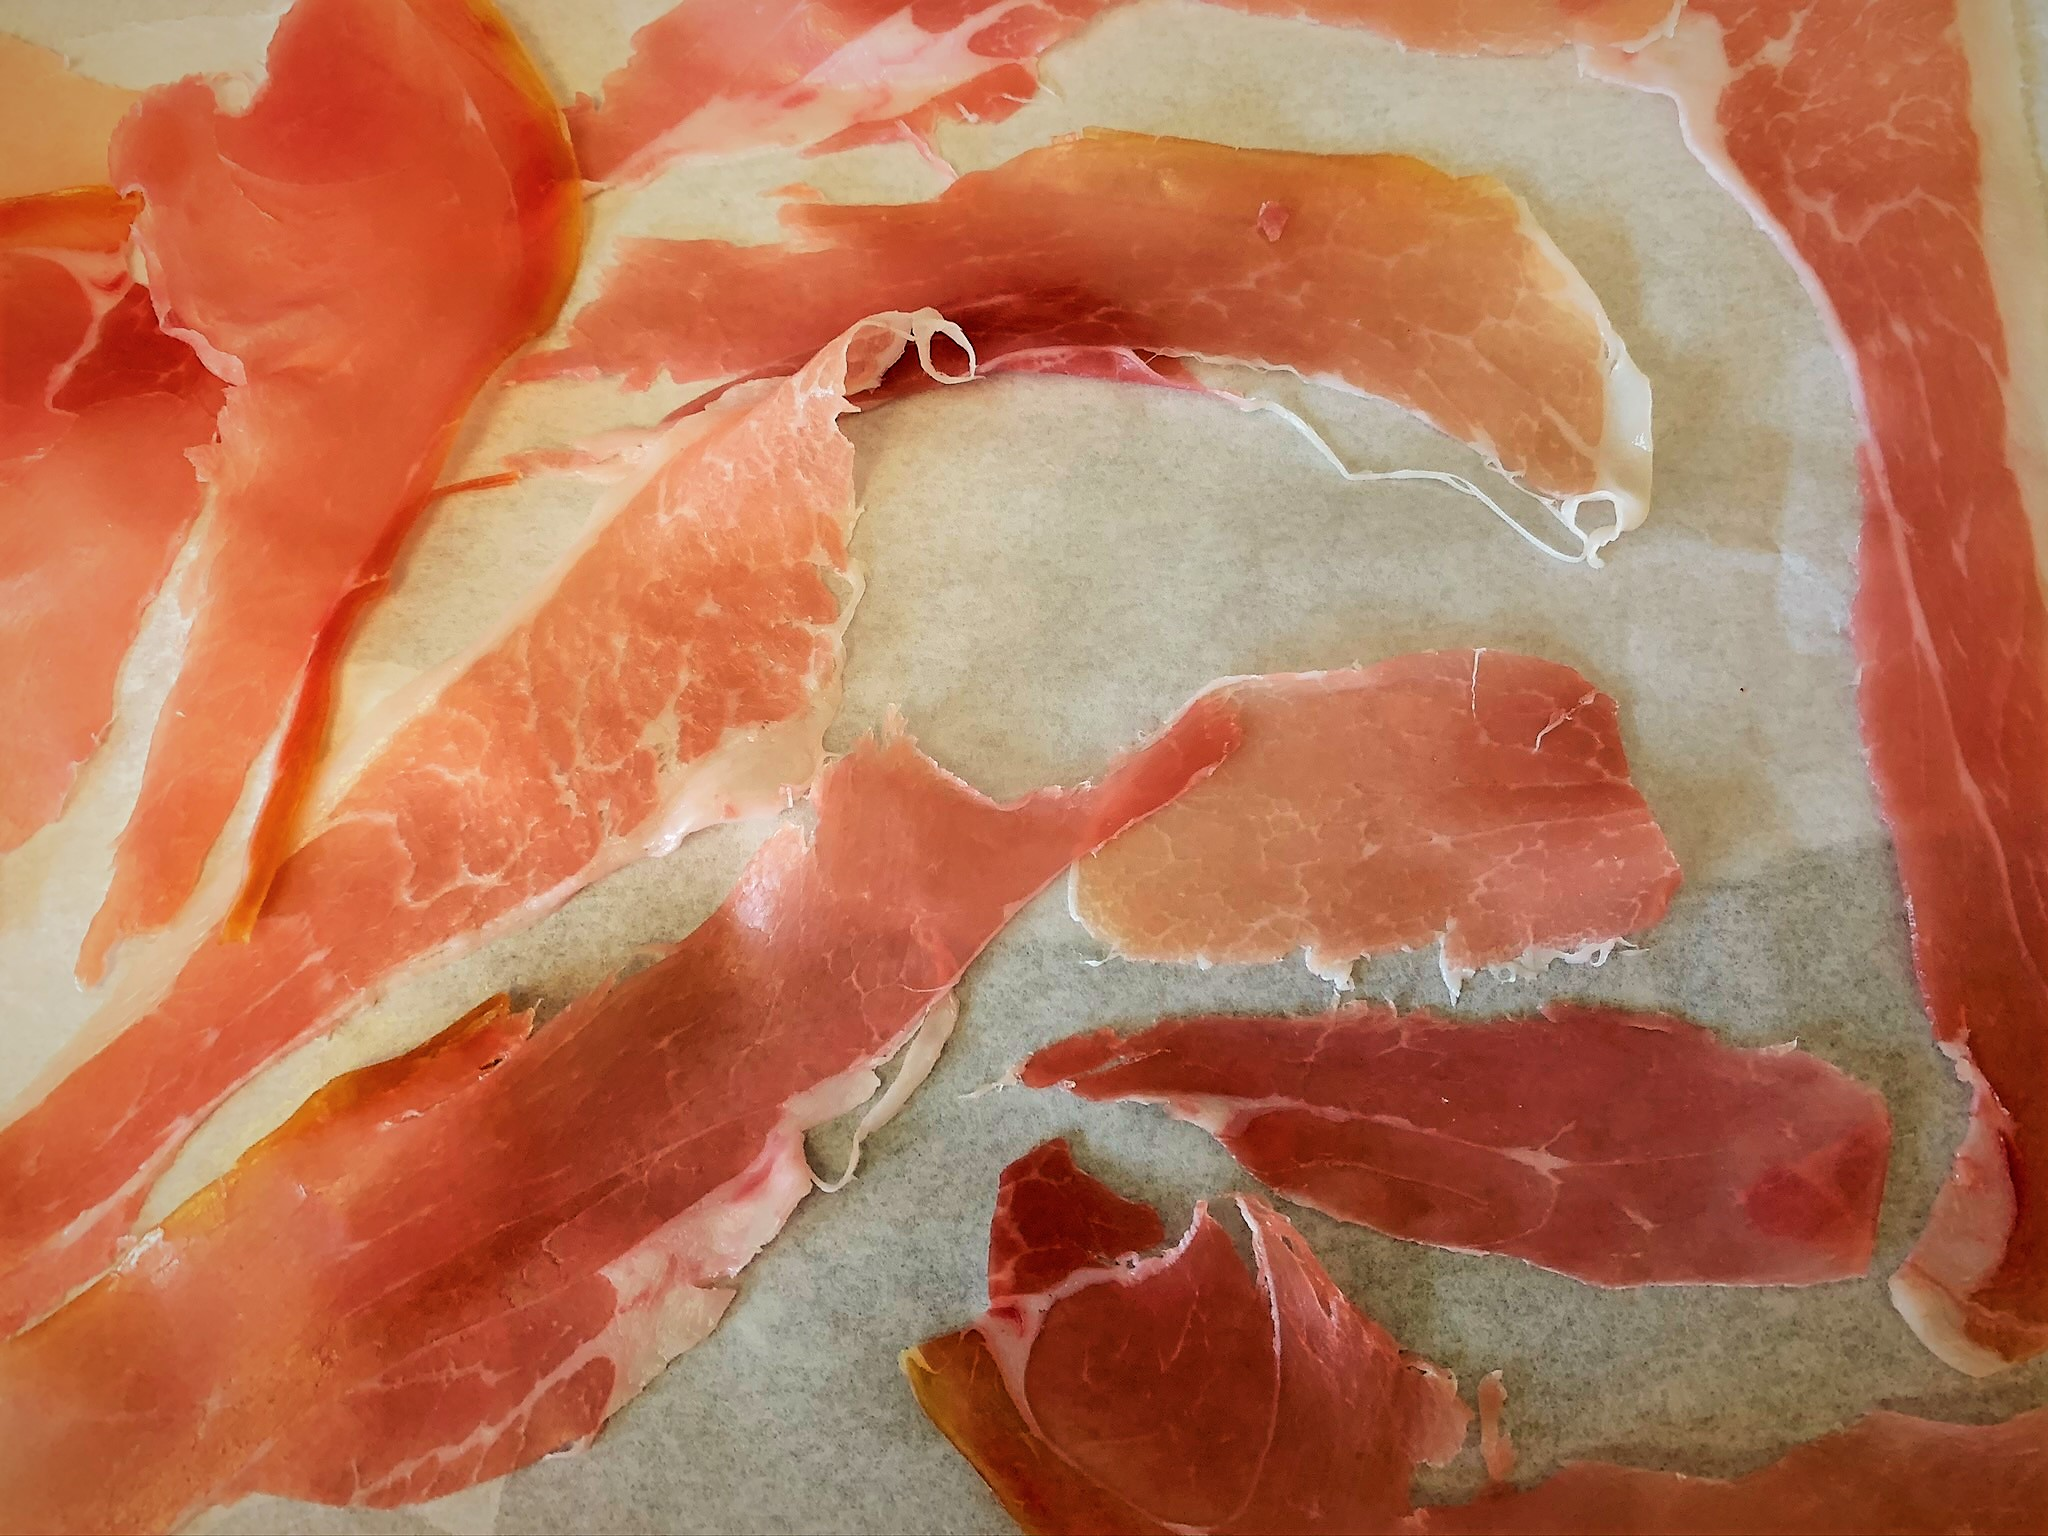 Prepping our Crispy Prosciutto